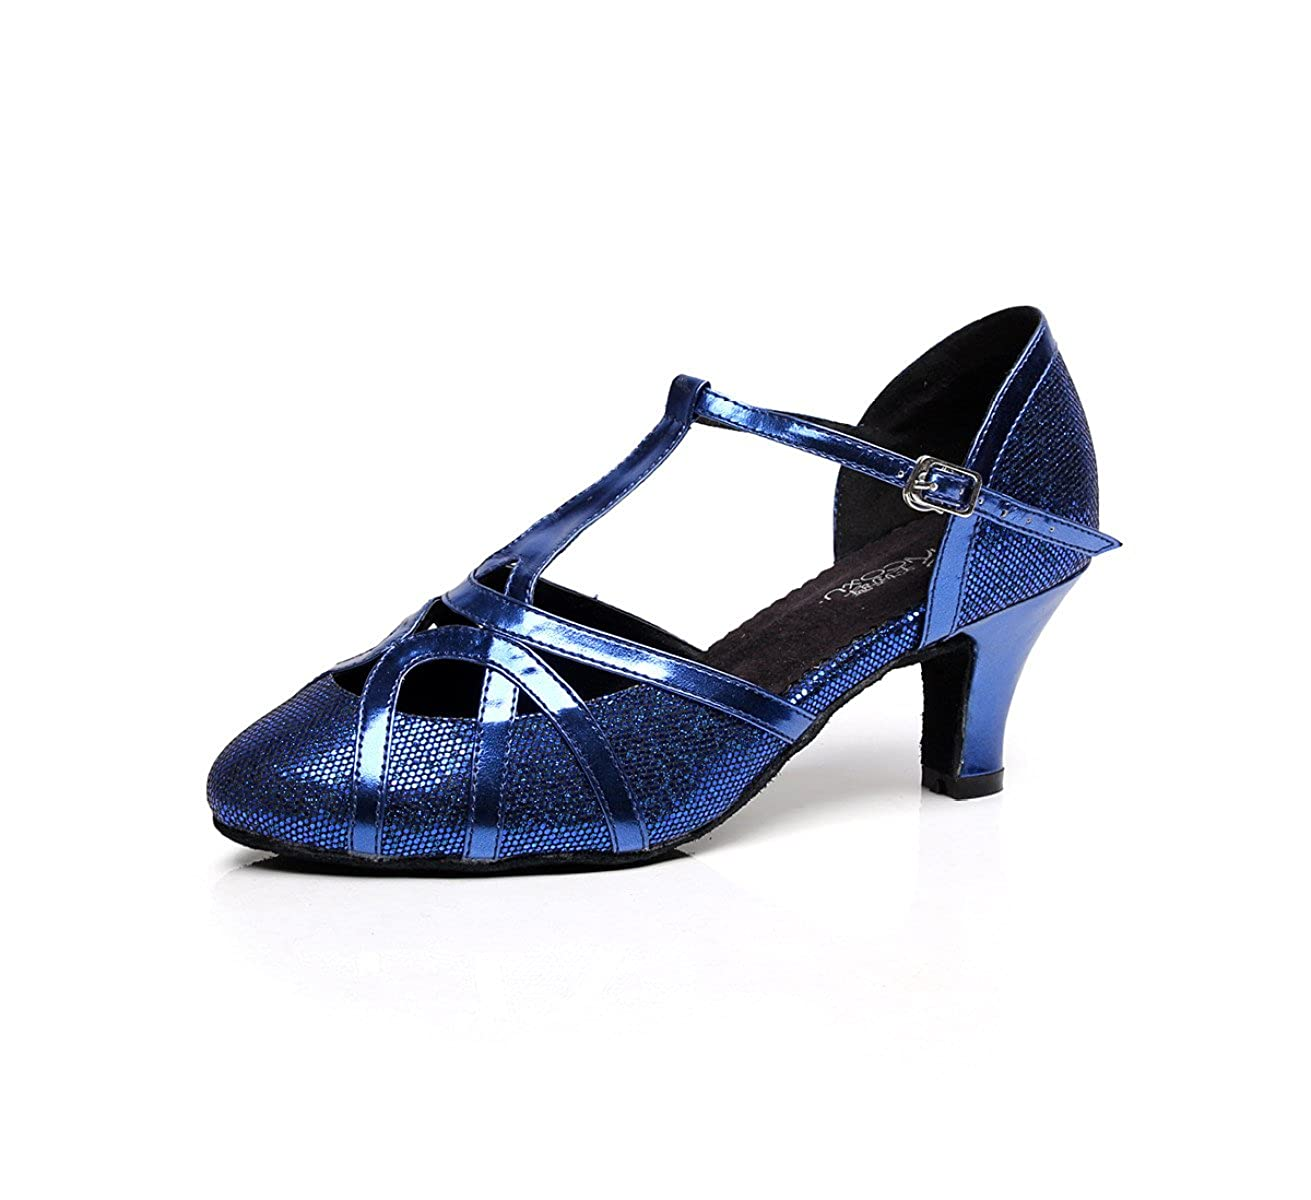 JSHOE Femmes Closed JSHOE Toe Talon Tango Haut Closed PU Cuir Paillettes Salsa Tango Ballroom Latine T-Strap Chaussures De Danse,Blue-heeled6cm-UK7/EU41/Our42 - cea6a0d - fast-weightloss-diet.space